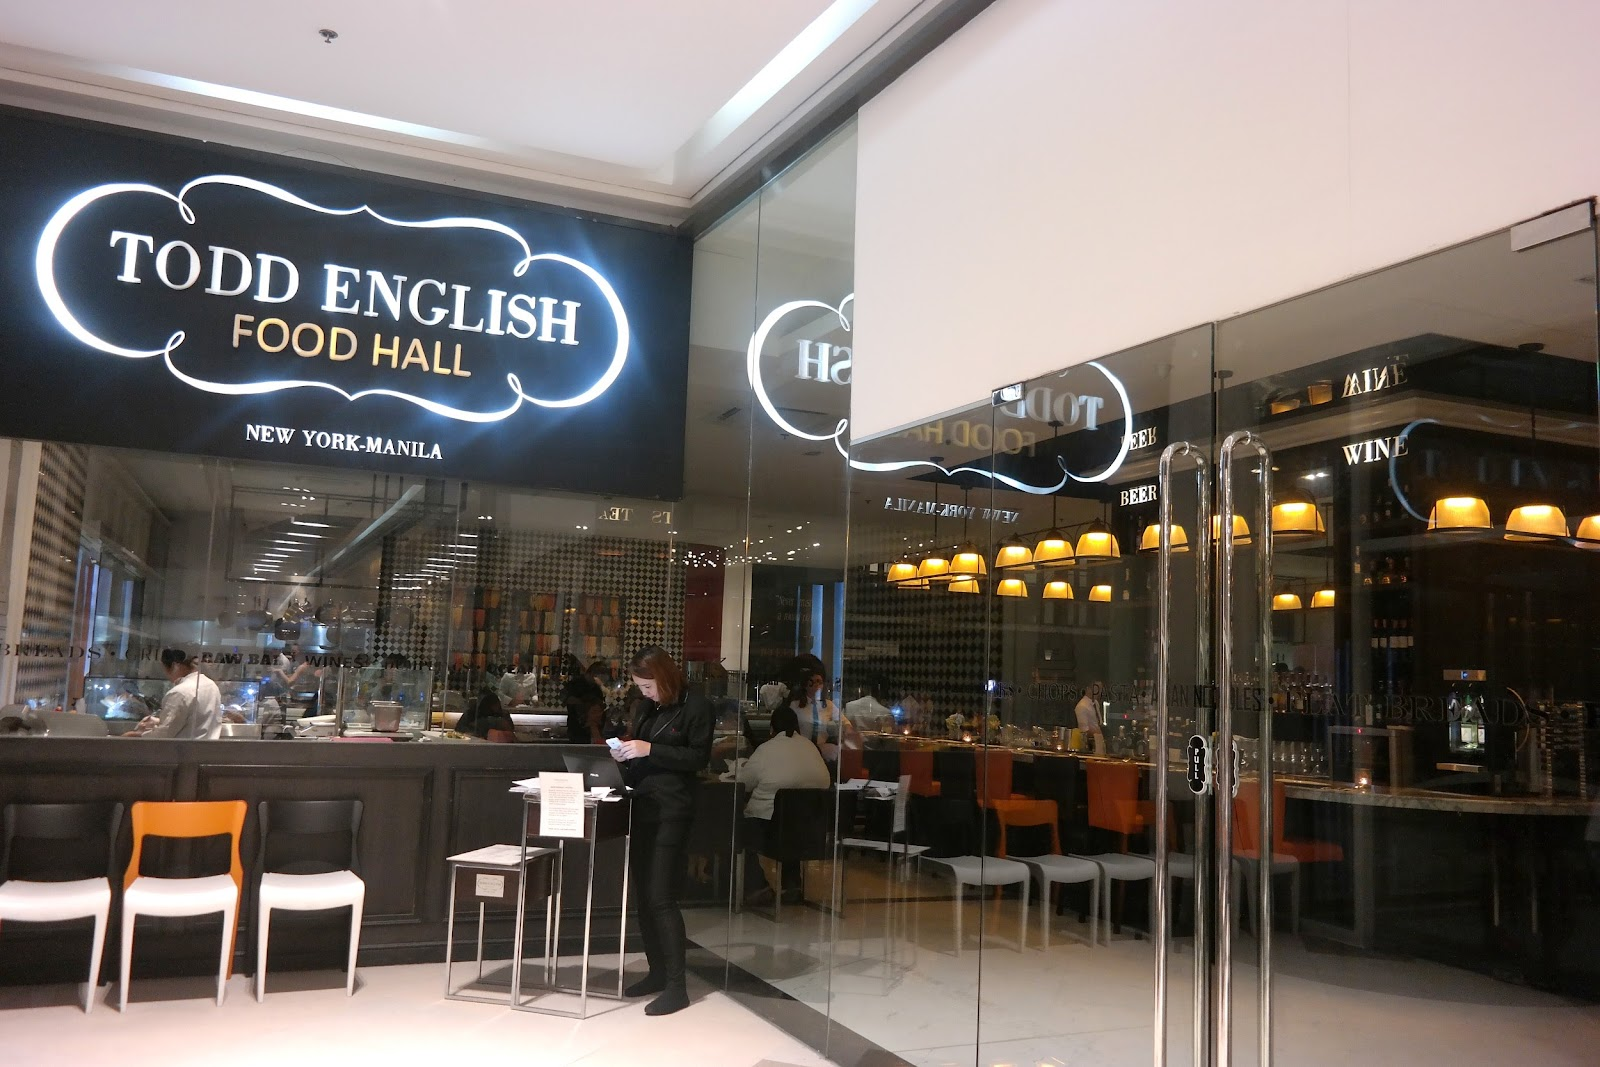 Todd English Food Hall Has Been Creating A Buzz Among Foos And Regular Restaurant Goers Since It Opened In 2017 Why Well For One S The First